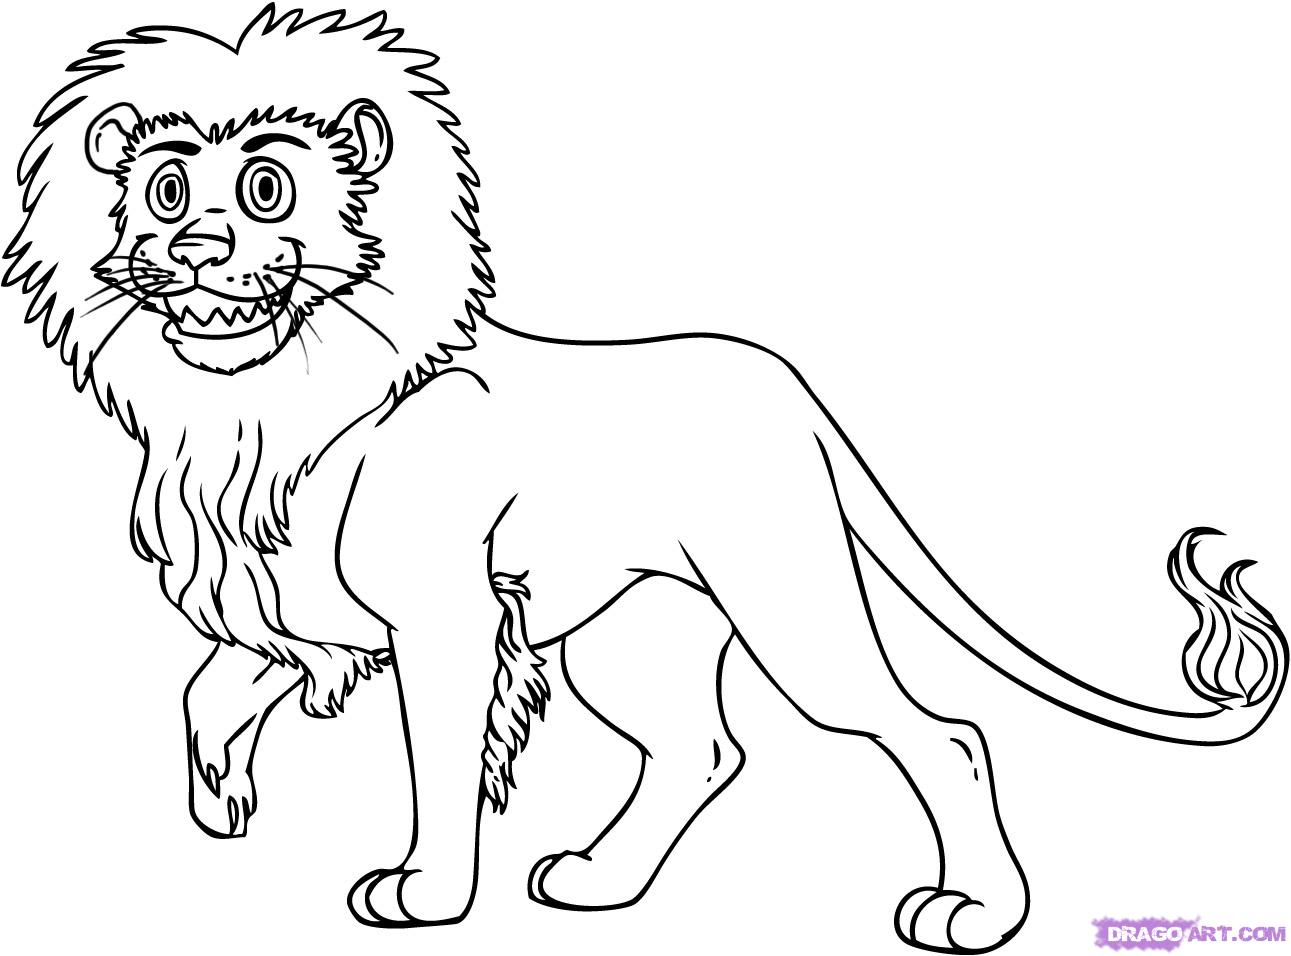 1291x956 Cartoon Drawing Of A Lion How To Draw A Cartoon Lion, Step By Step